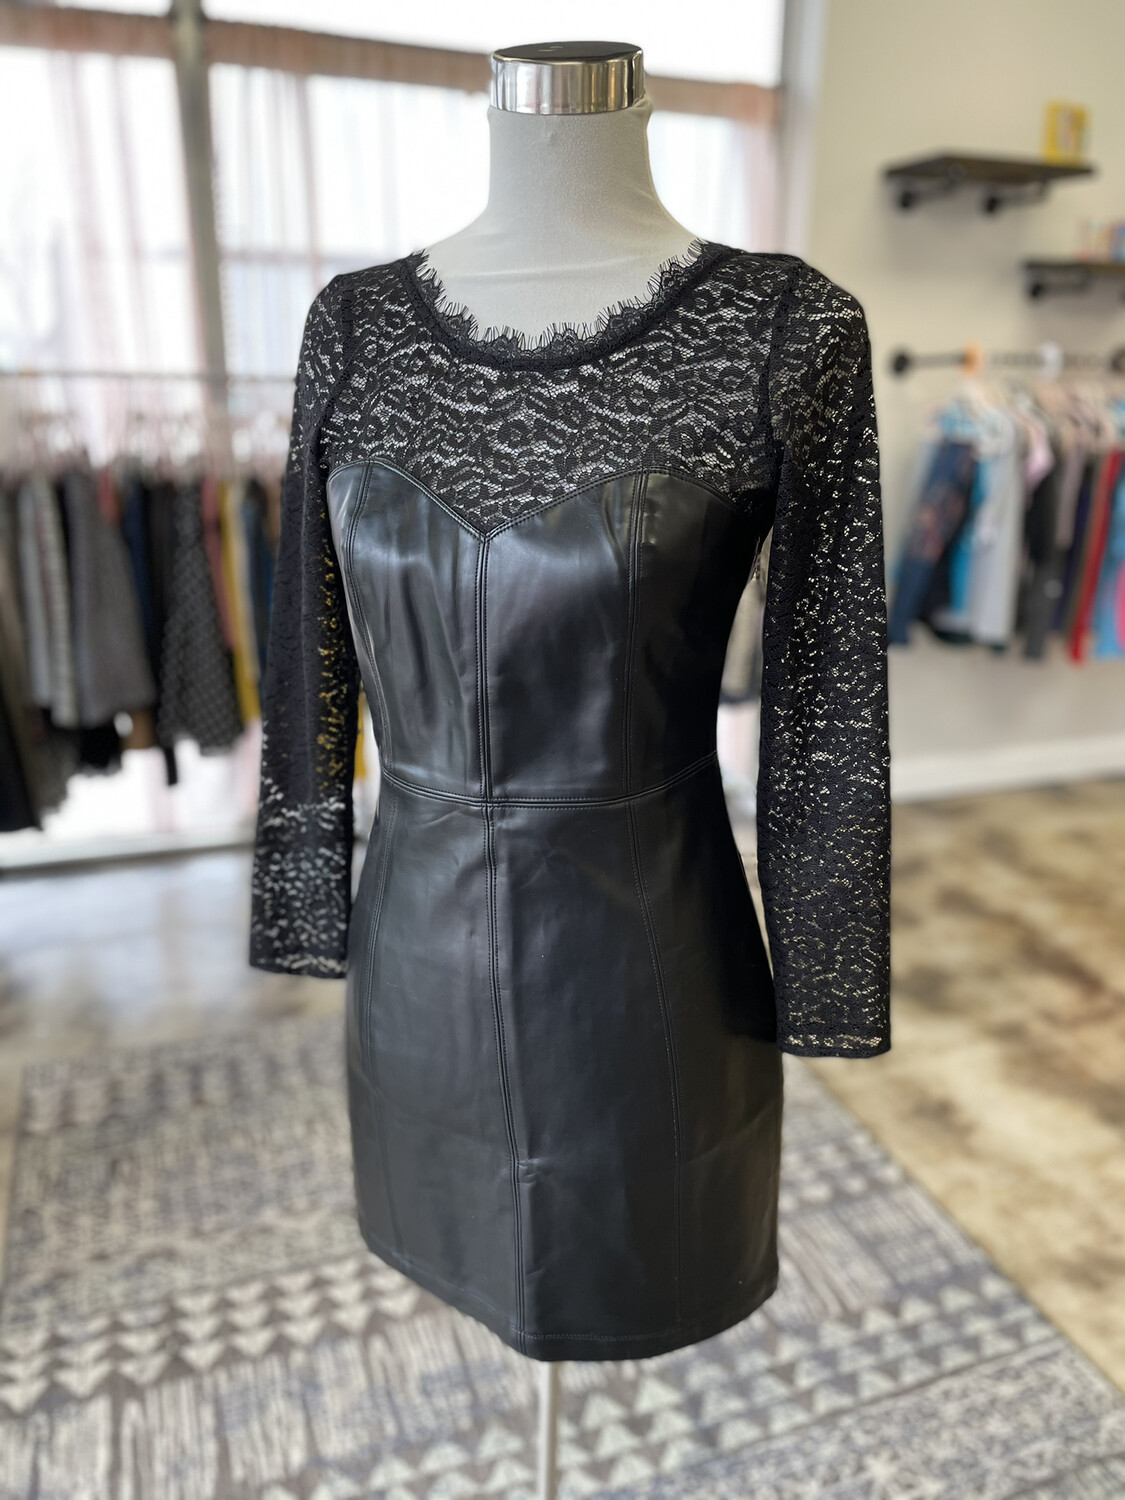 Free People Black Leather & Lace Dress - S